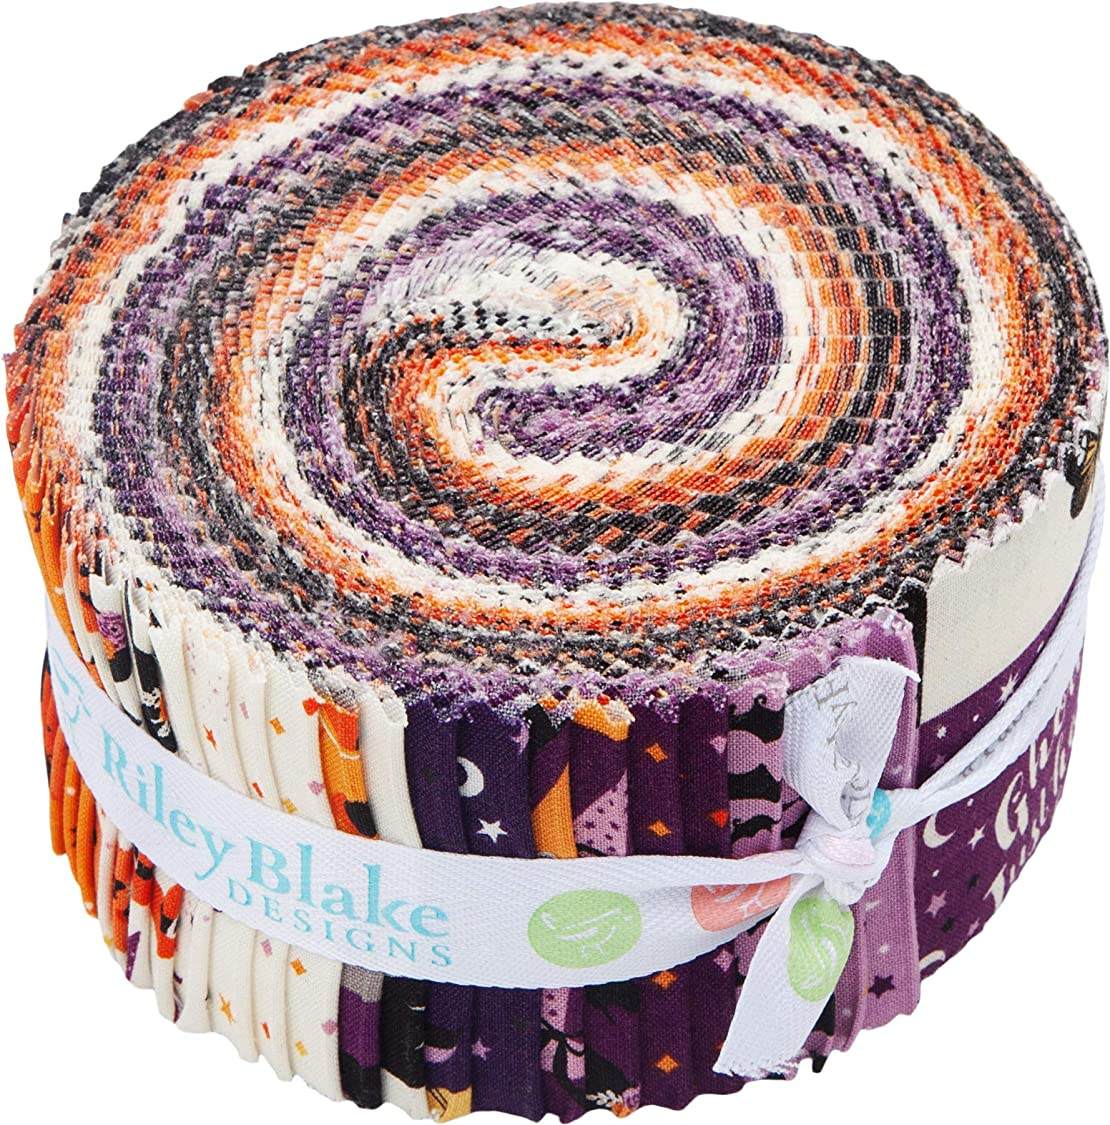 Dani Mogstad Fab-Boo-lous Rolie Polie 40 2.5-inch Strips Jelly Roll Riley Blake Designs RP-8170-40 mg79329805534926